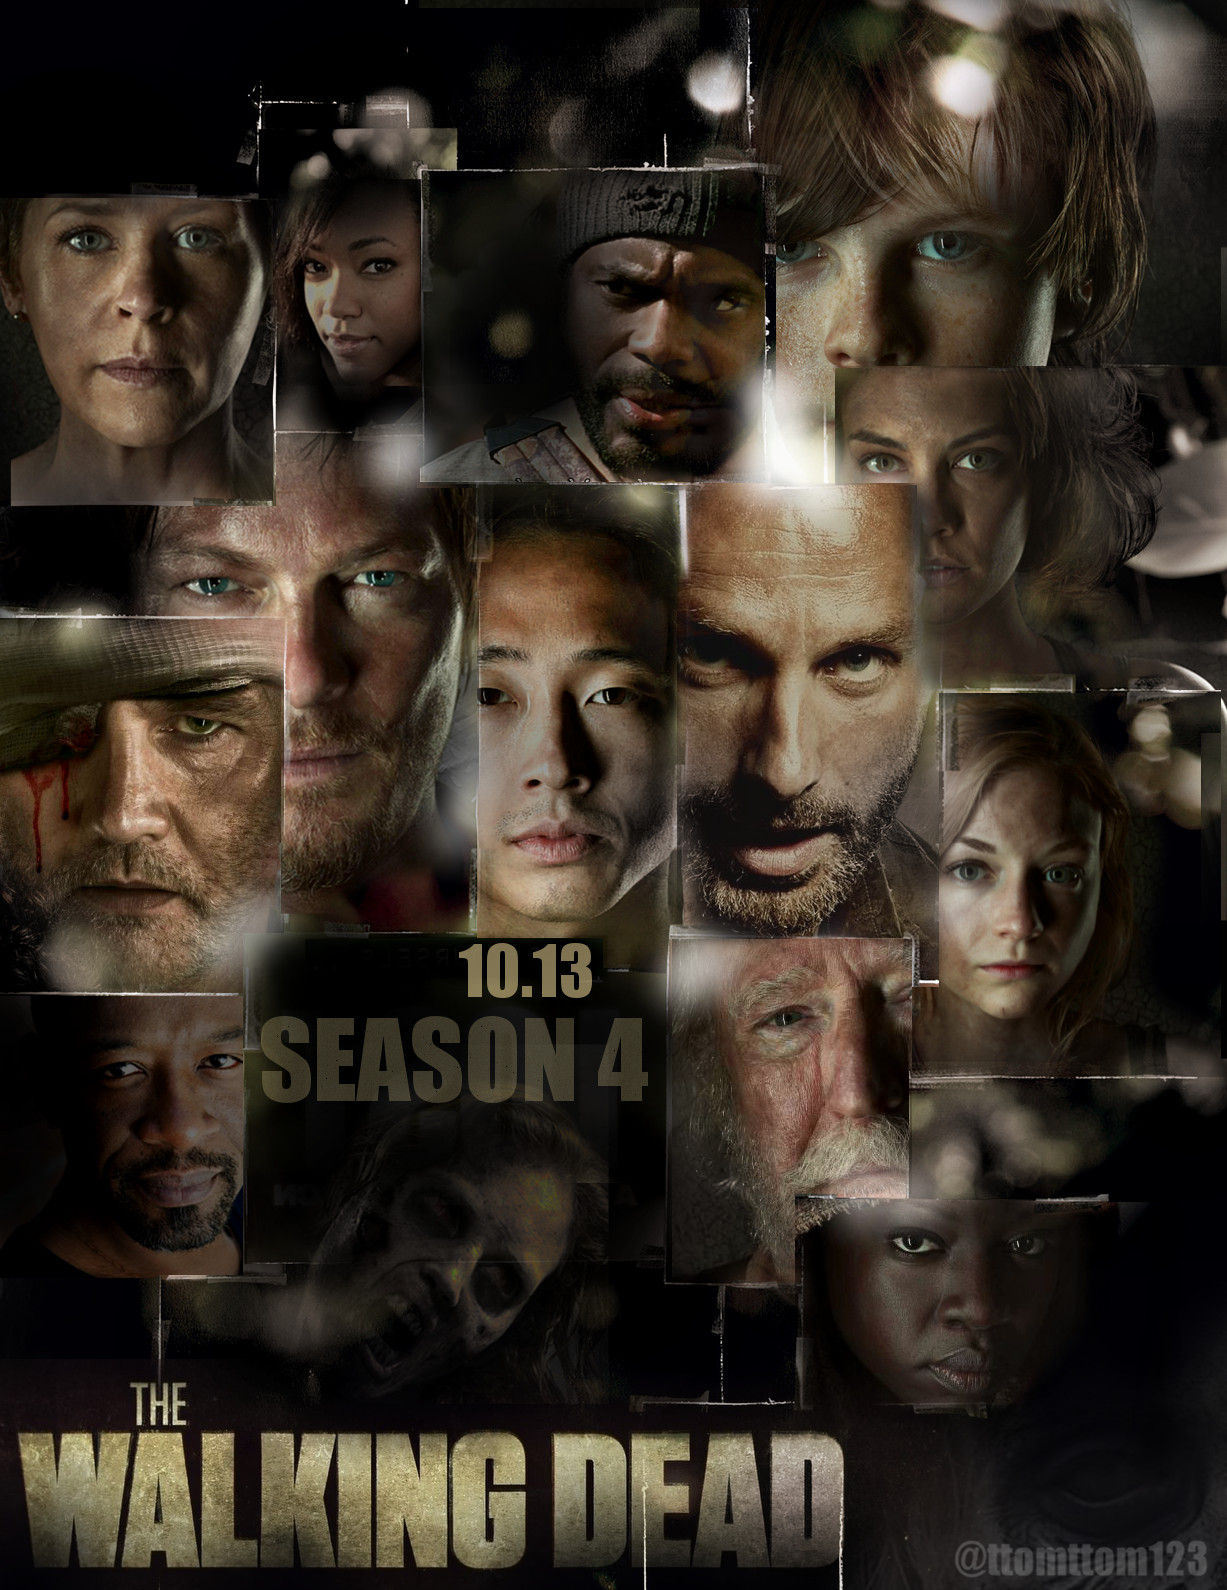 The Walking Dead THE WALKING DEAD SEASON 4